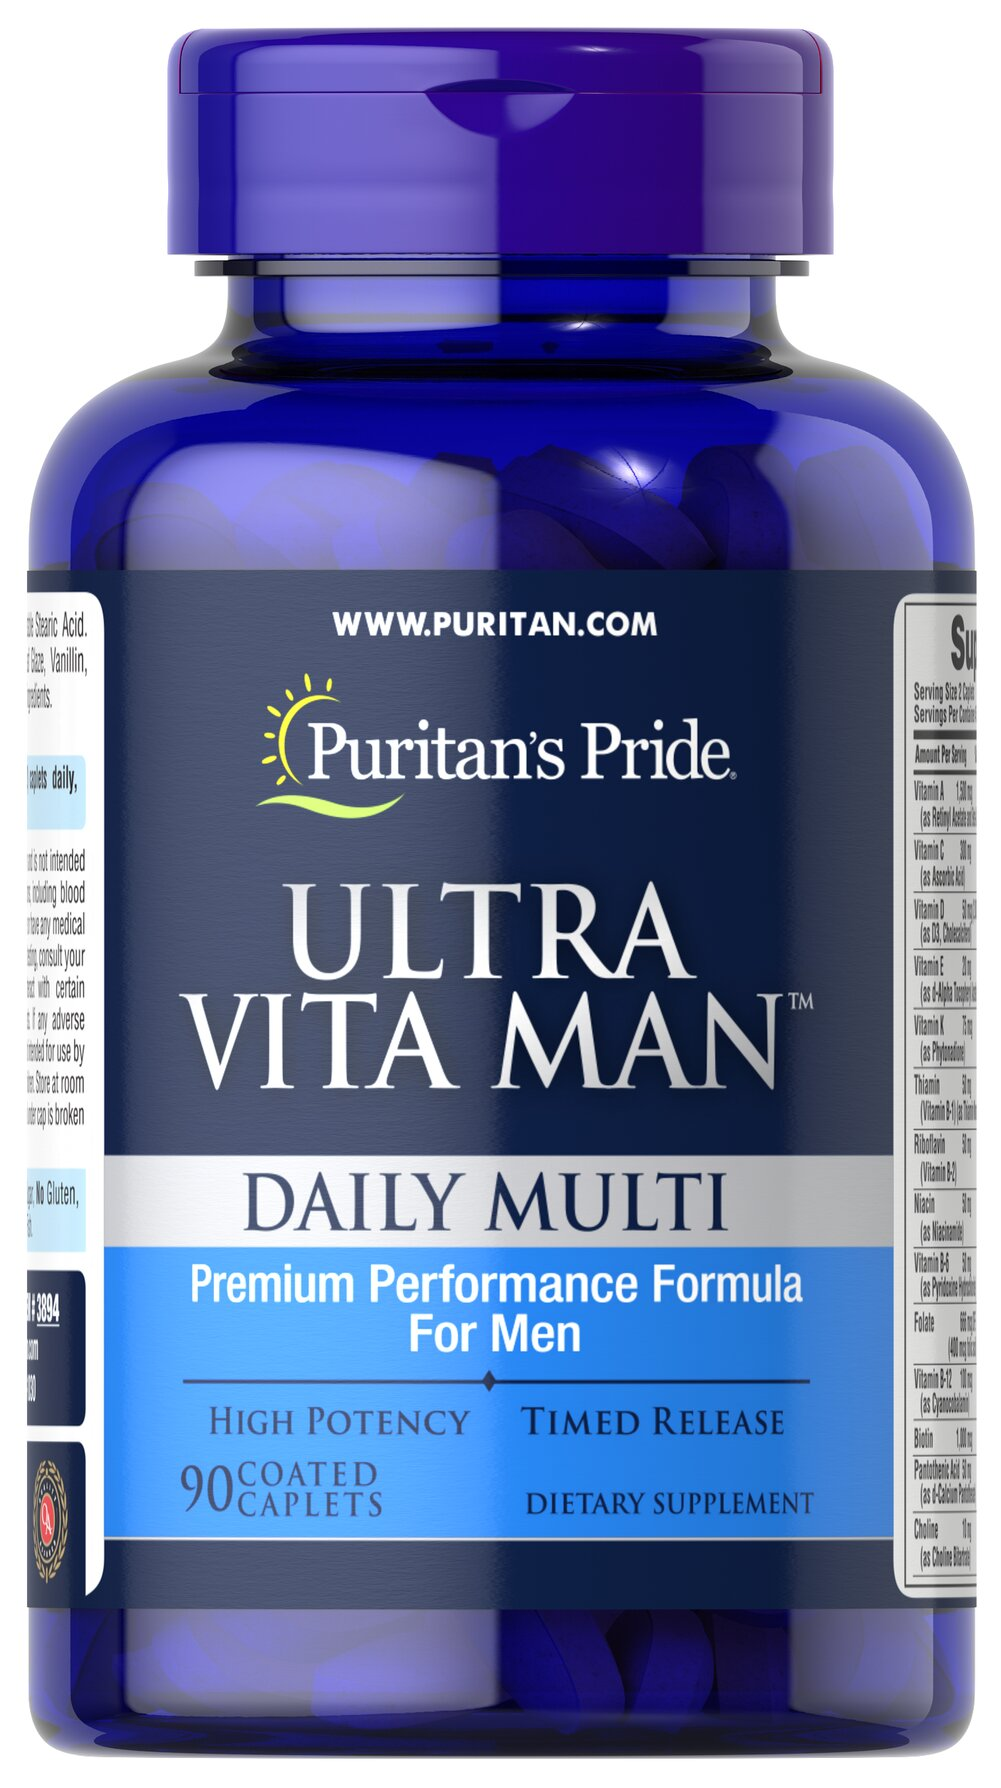 Ultra Vita Man™ Time Release <p>This time release multivitamin  delivers vitamins and minerals shown to be beneficial to men's overall wellness. From antioxidant and immune support to cardiovascular health, Ultra Vita Man is ideal for today's on-the-go men!**</p> 90 Caplets